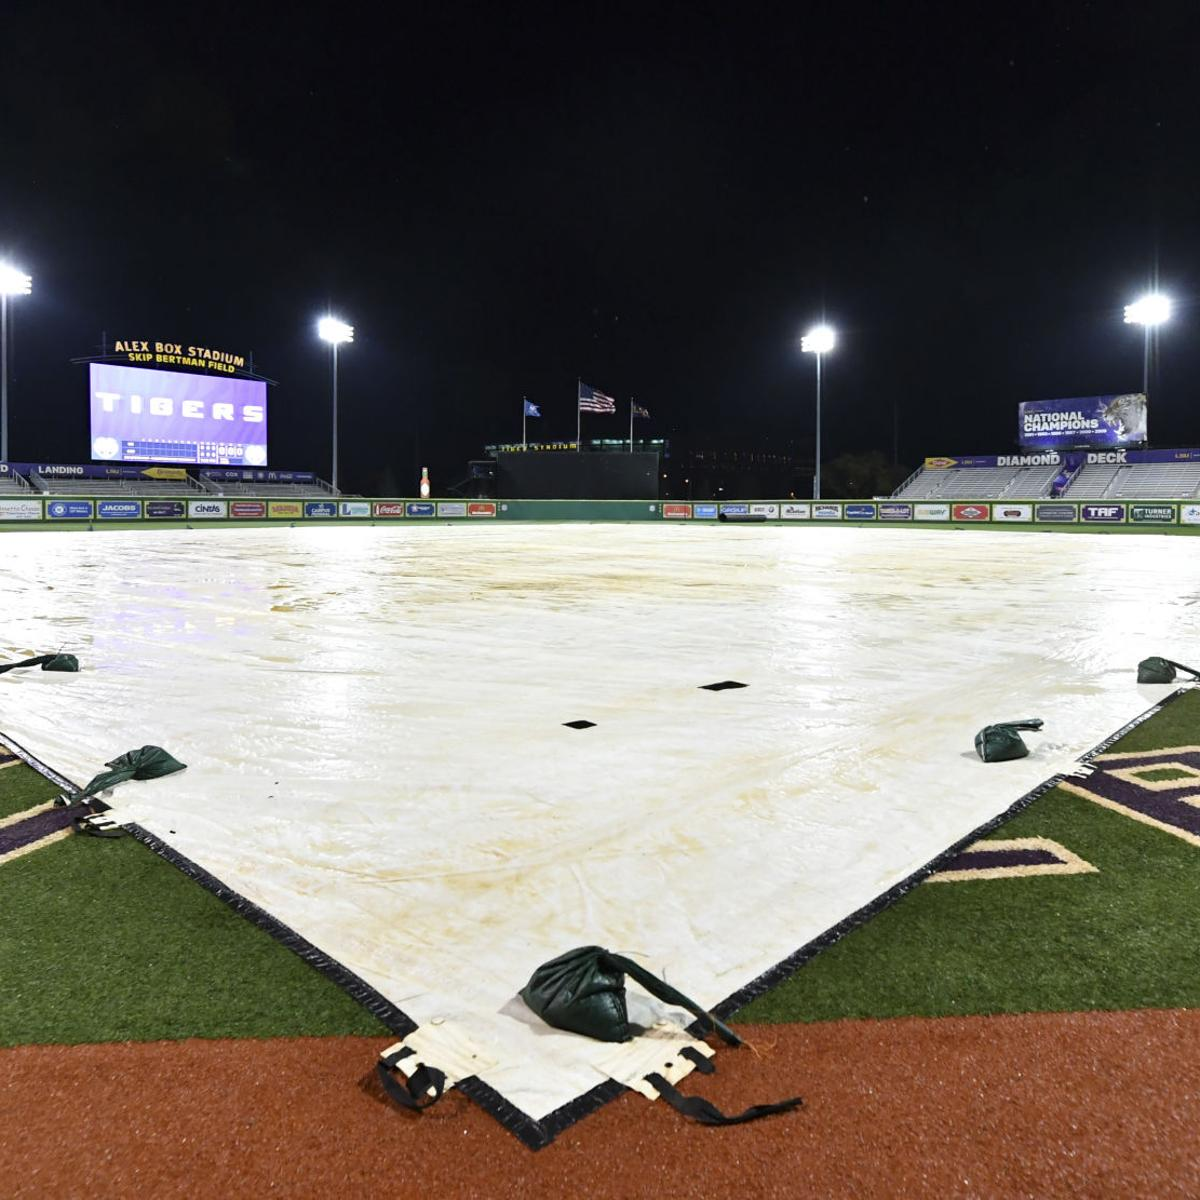 Severe weather forecast makes LSU and Texas A&M ponder